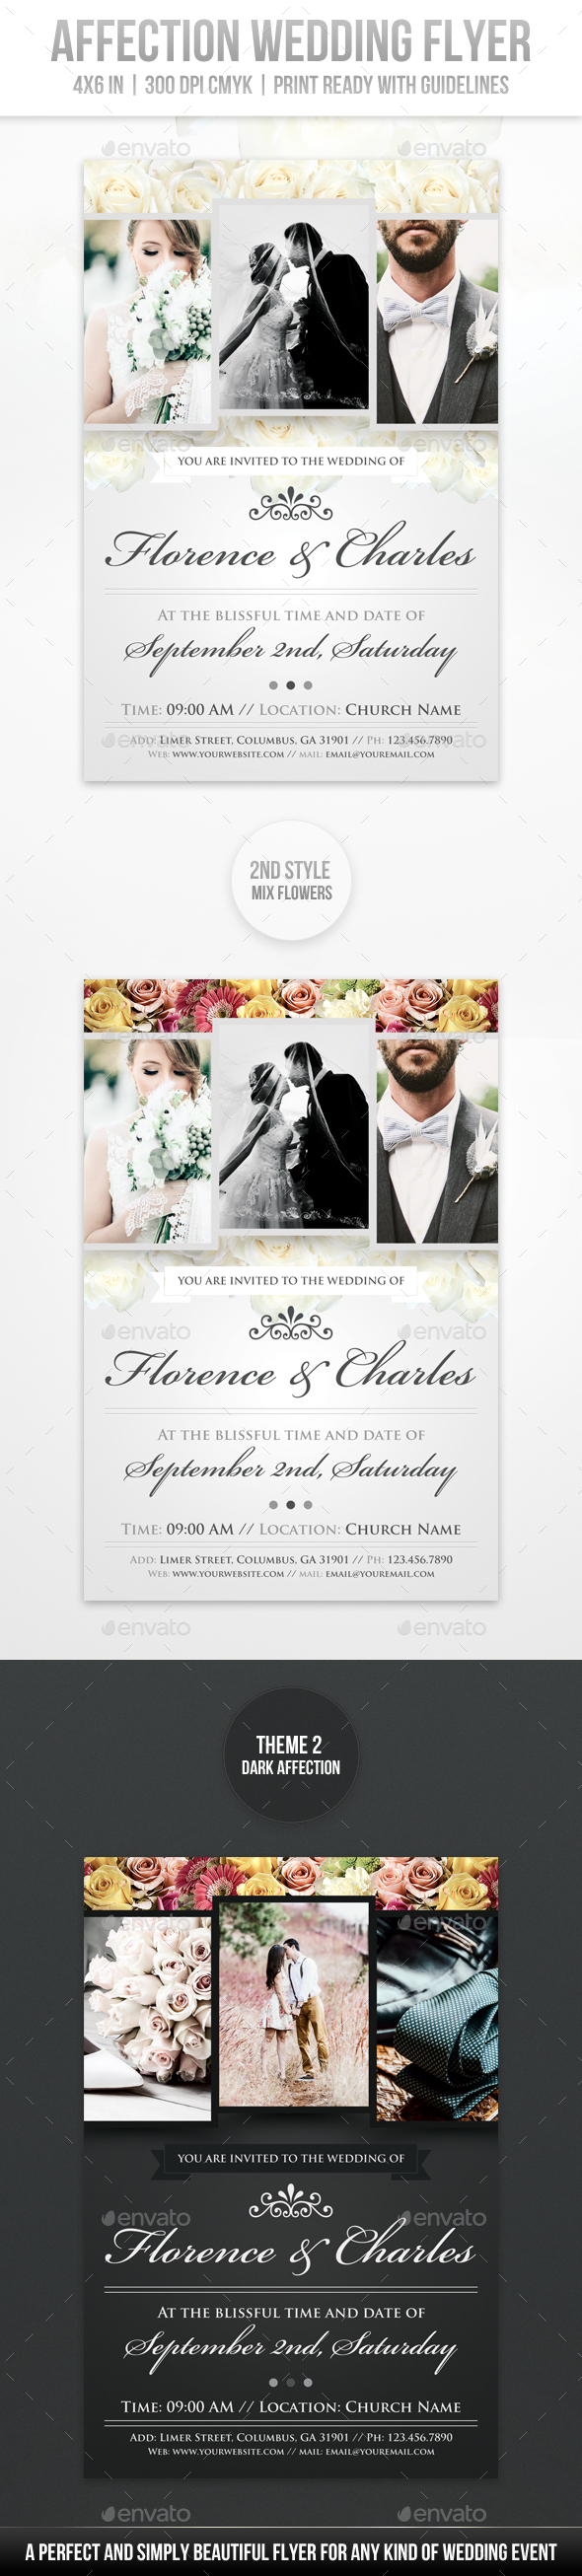 Affection Wedding Flyer - Miscellaneous Events